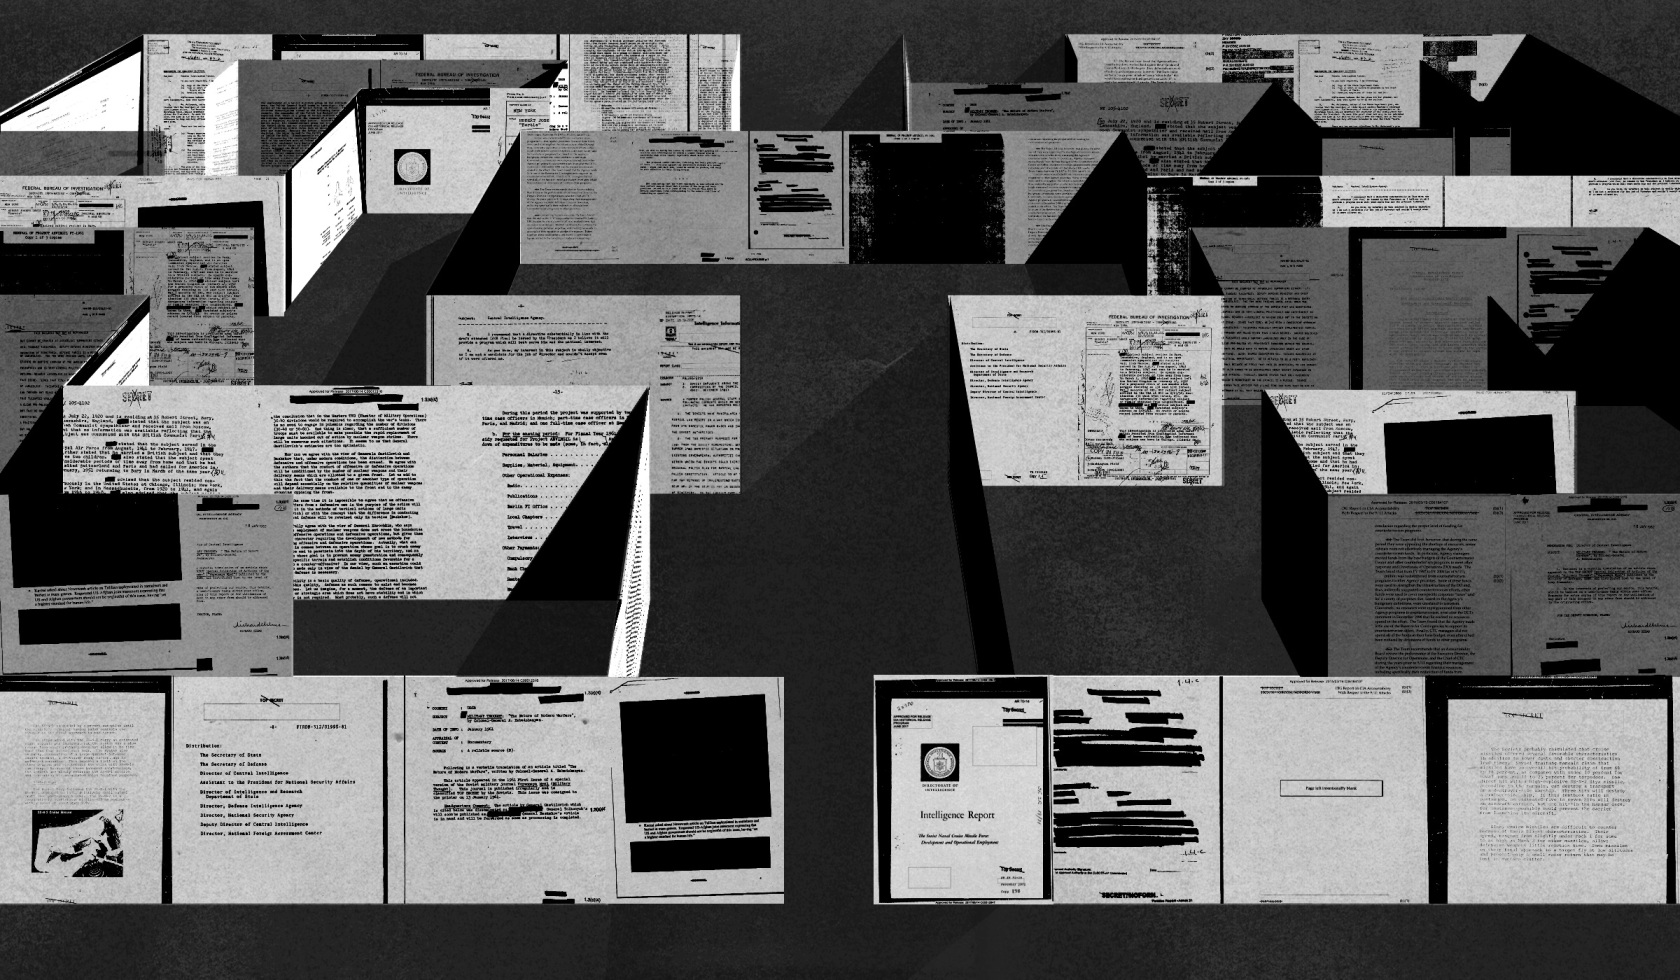 My Journey to the Heart of the FOIA Request